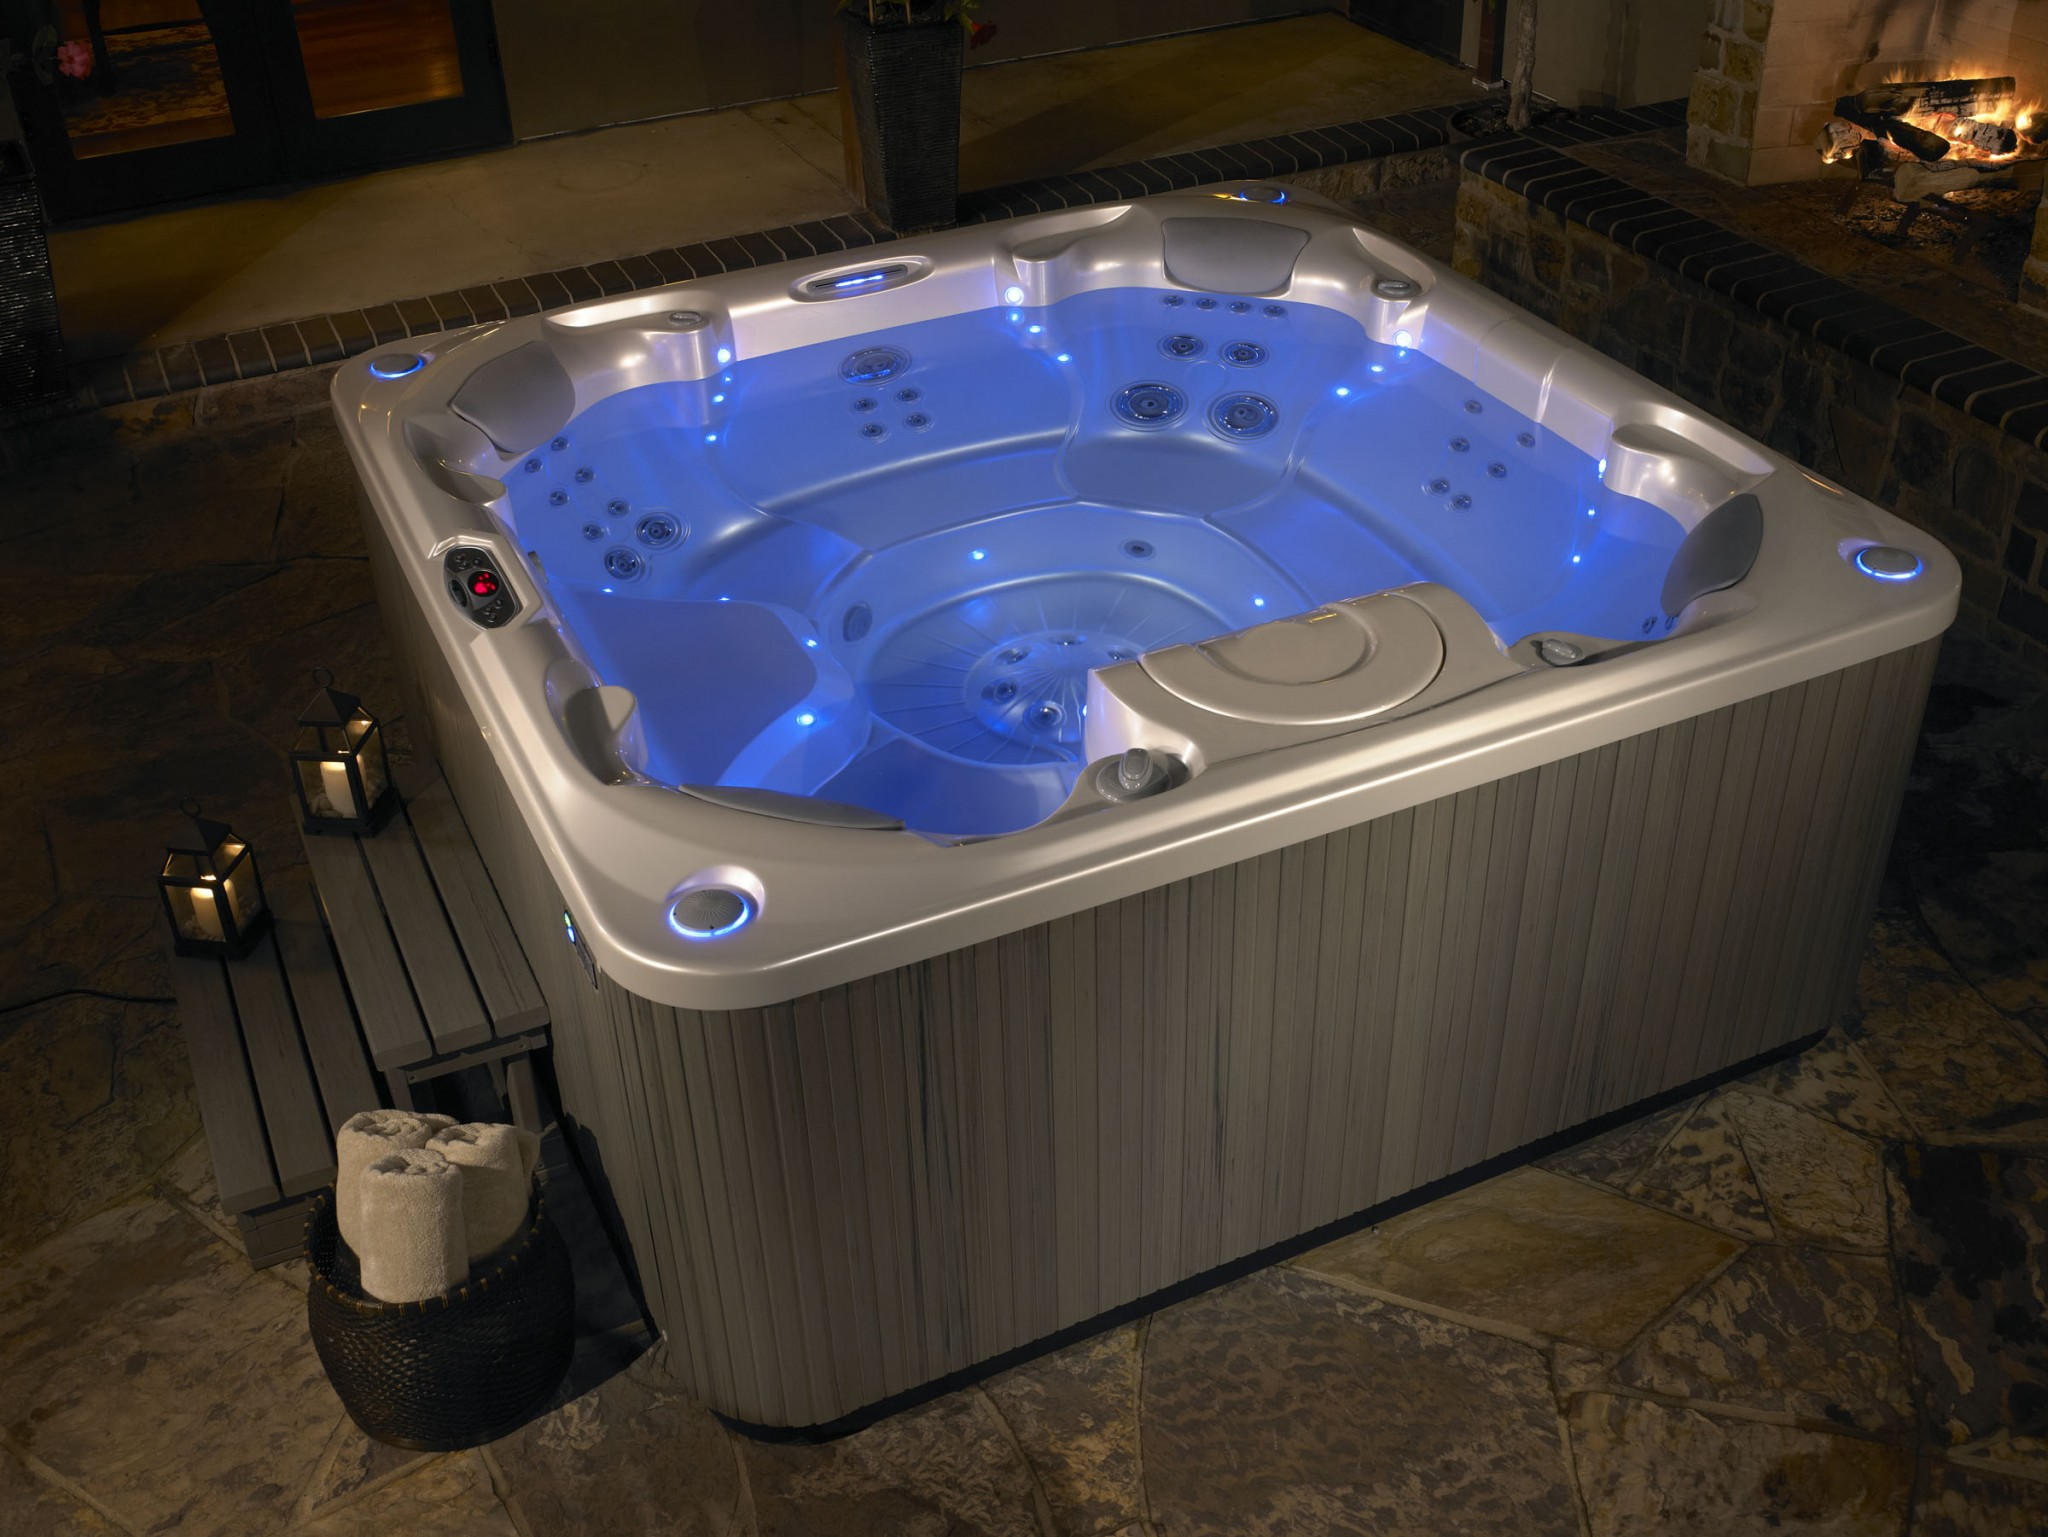 Jacuzzi Pool Repairs Big Blue Hot Tub Services Big Blue Spa Service And Repair